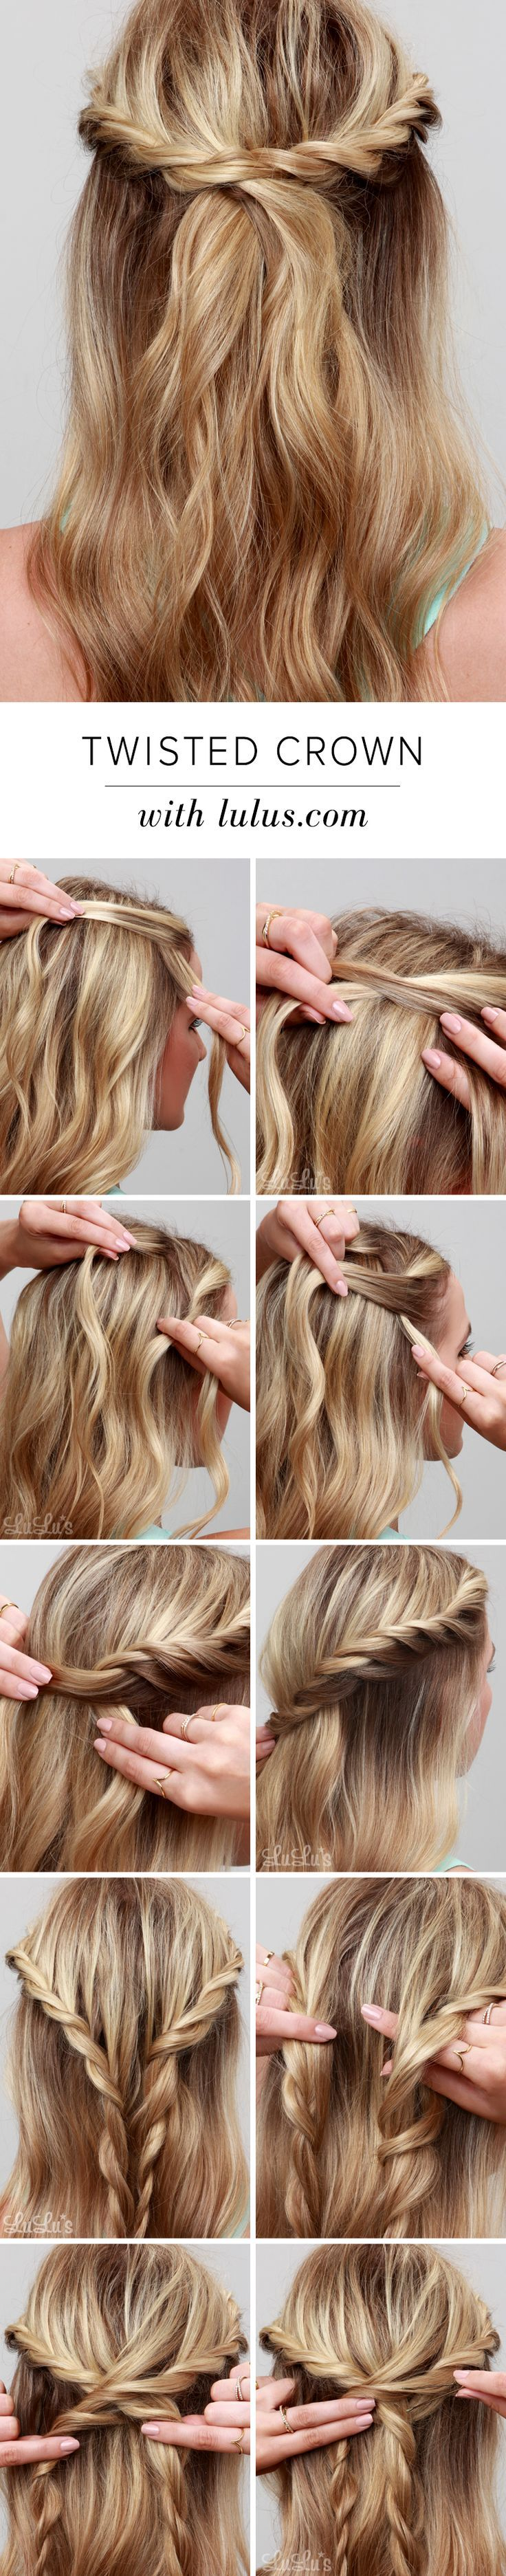 LuLu*s How-To: Twisted Crown Hair Tutorial at LuLus.com!